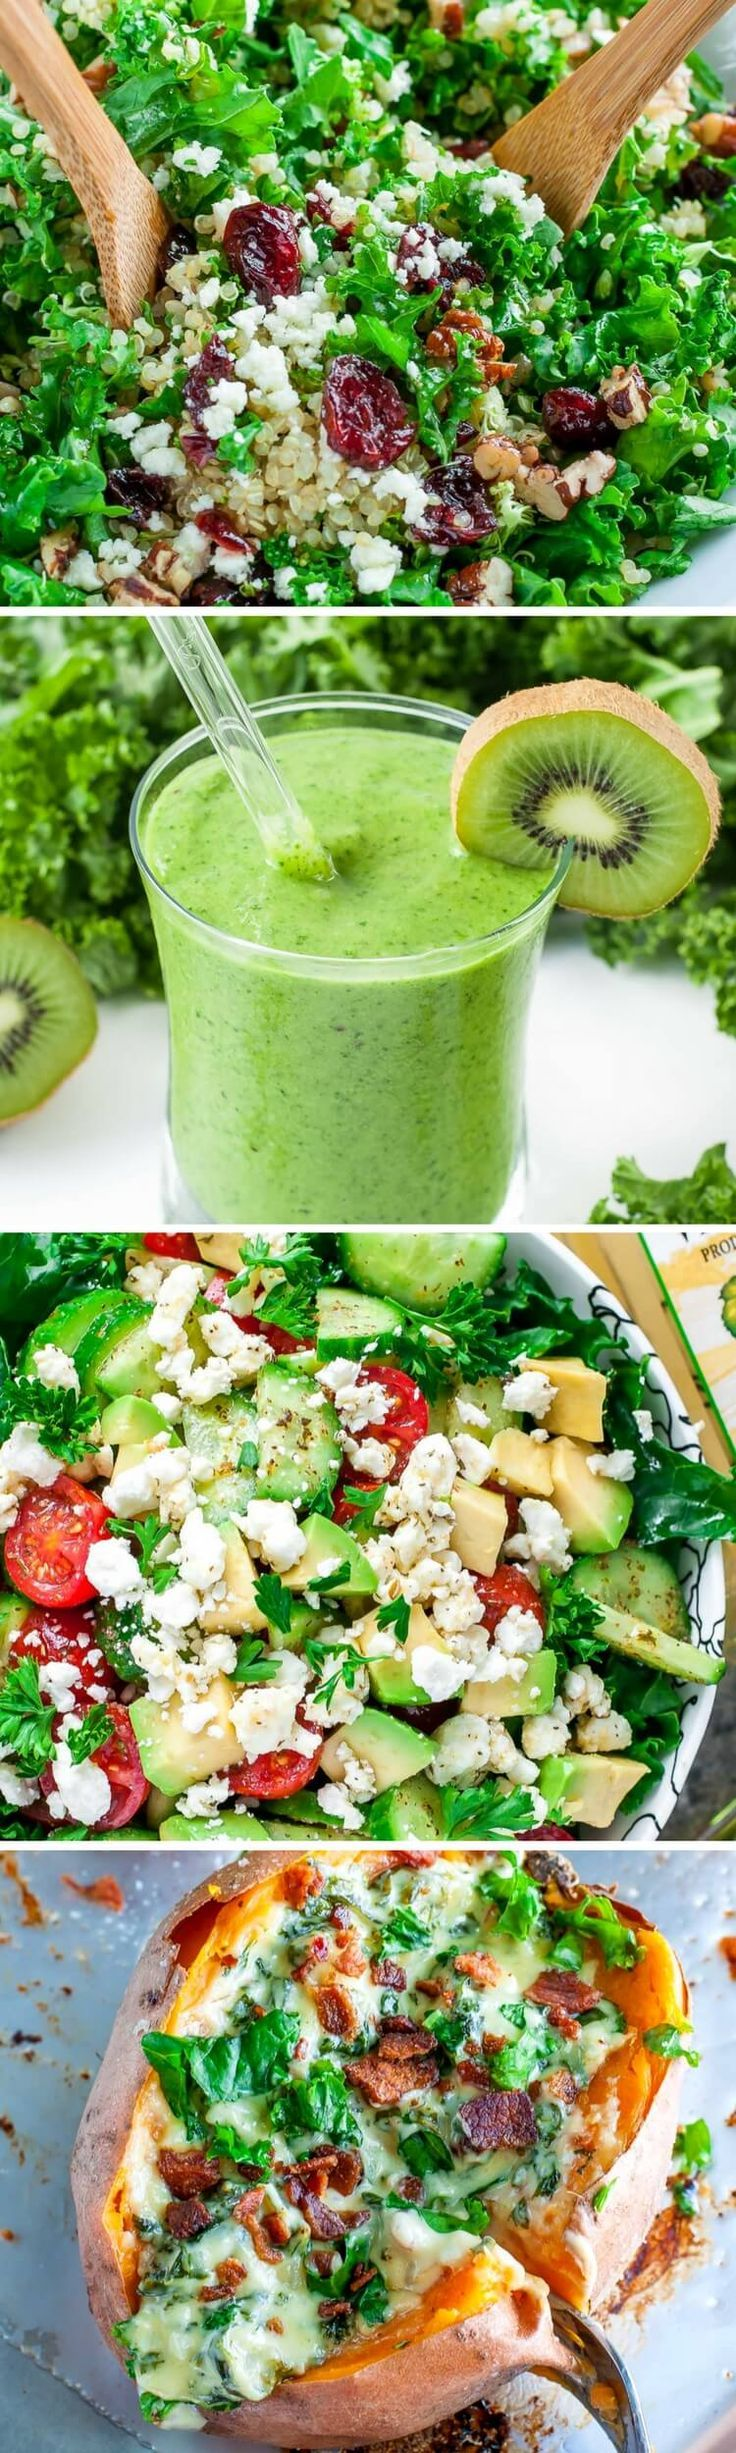 """This collection of tasty ways to eat more kale is long overdue! Let's take your outlook from """"Kale?"""" to """"KALE YEAH!!!"""" with delicious recipes that will change the way you think about this healthy veggie!"""